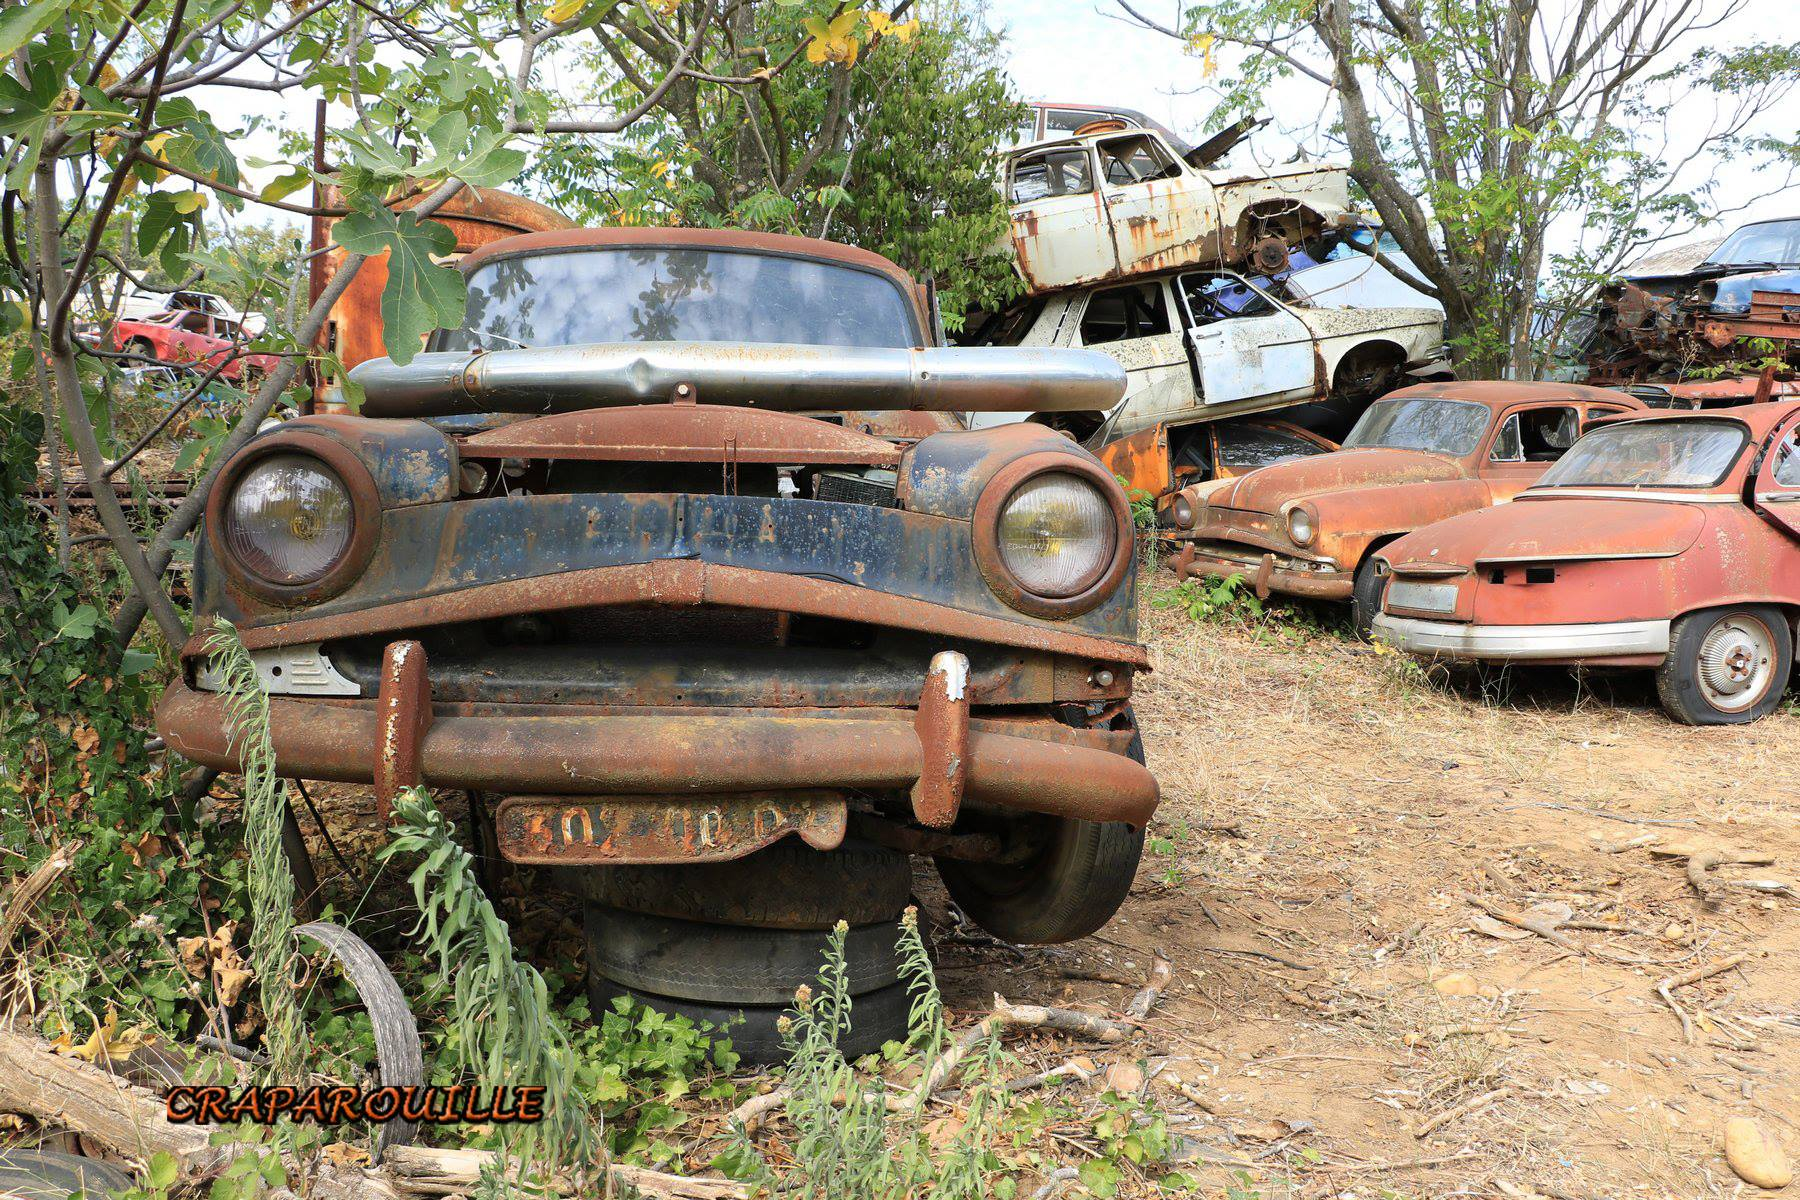 Photography-Diamonds-in-Rust-Craparouille-87